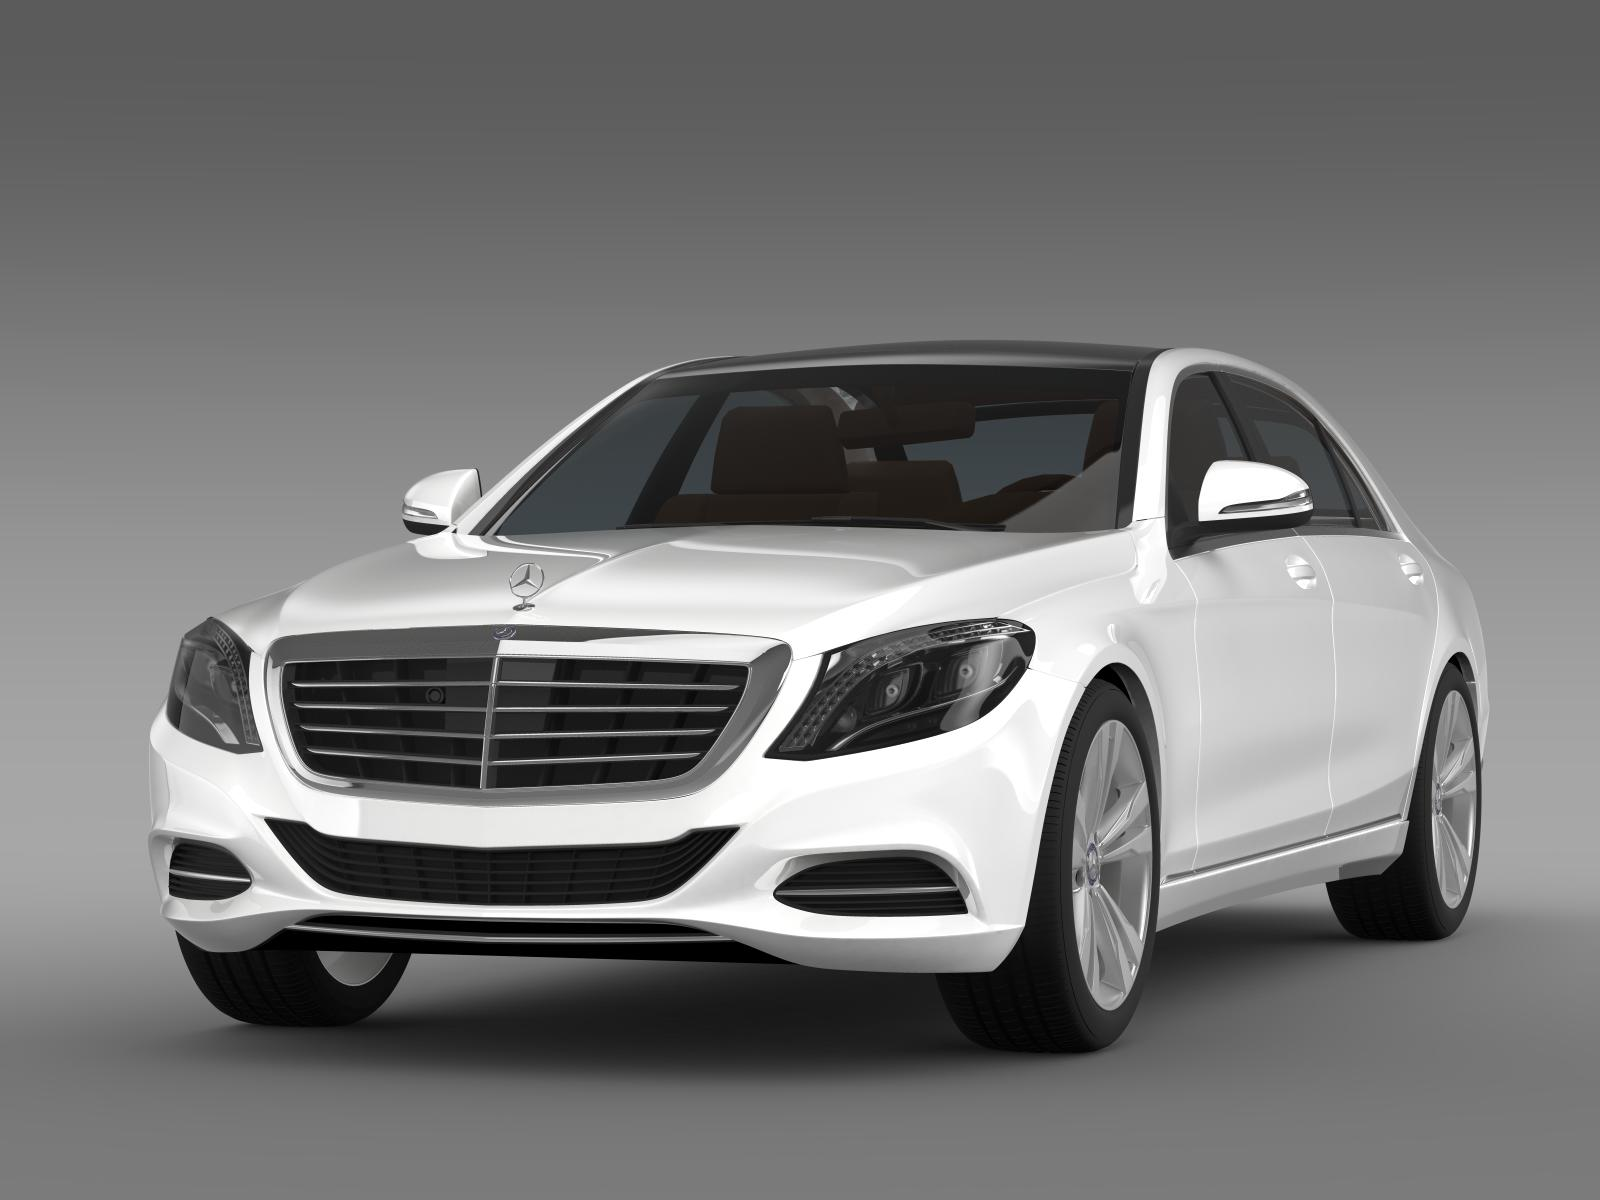 mercedes benz s 350 bluetec w222 2013 3d model. Black Bedroom Furniture Sets. Home Design Ideas